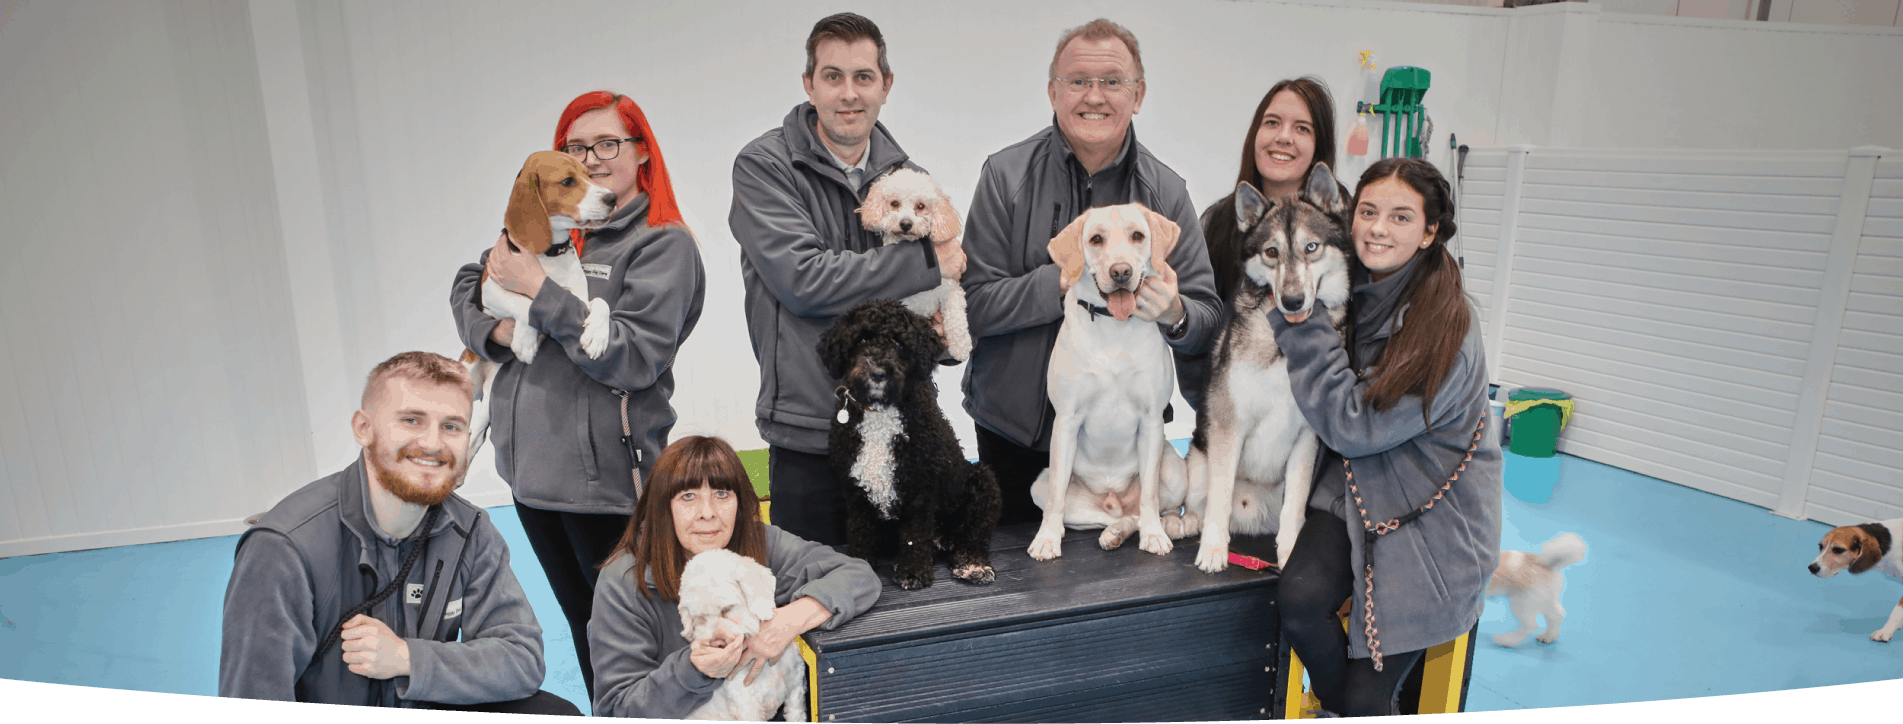 Our doggy daycare Greater Manchester dogs